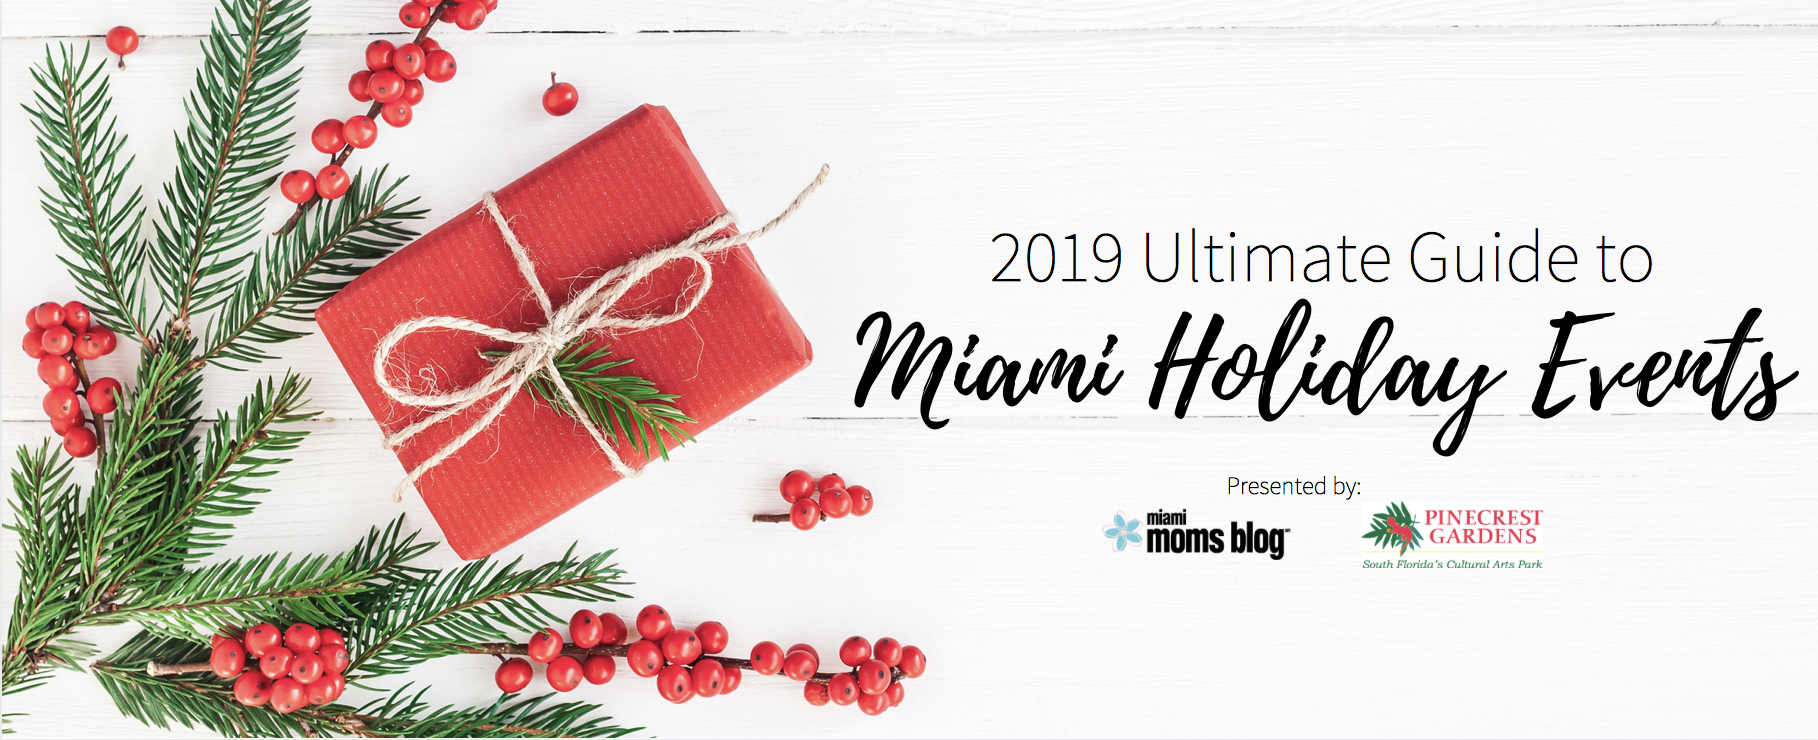 miami holiday events and activities guide